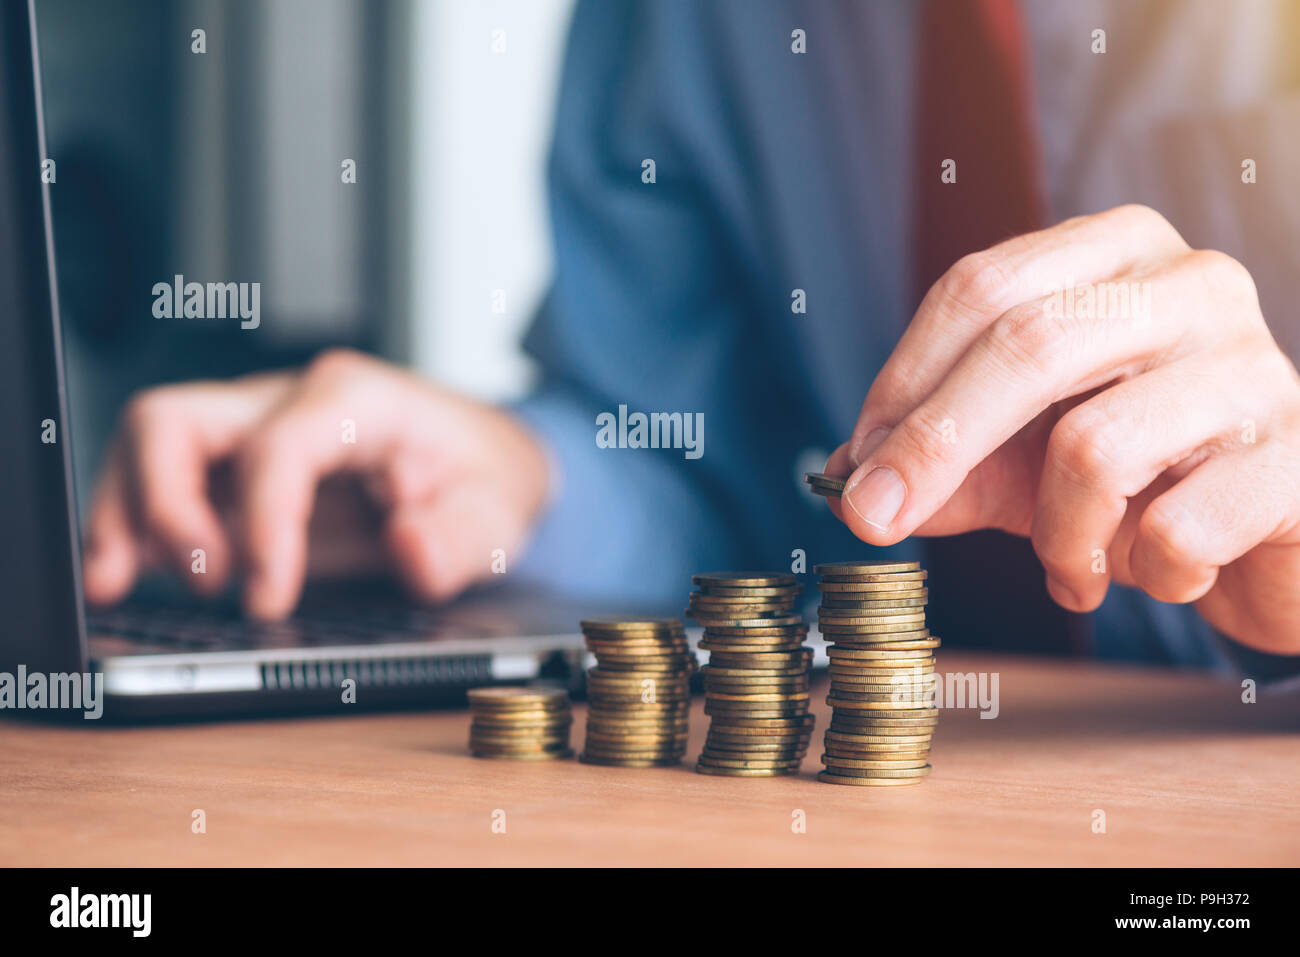 Finances and budgeting, businessman stacking coins on office desk - Stock Image